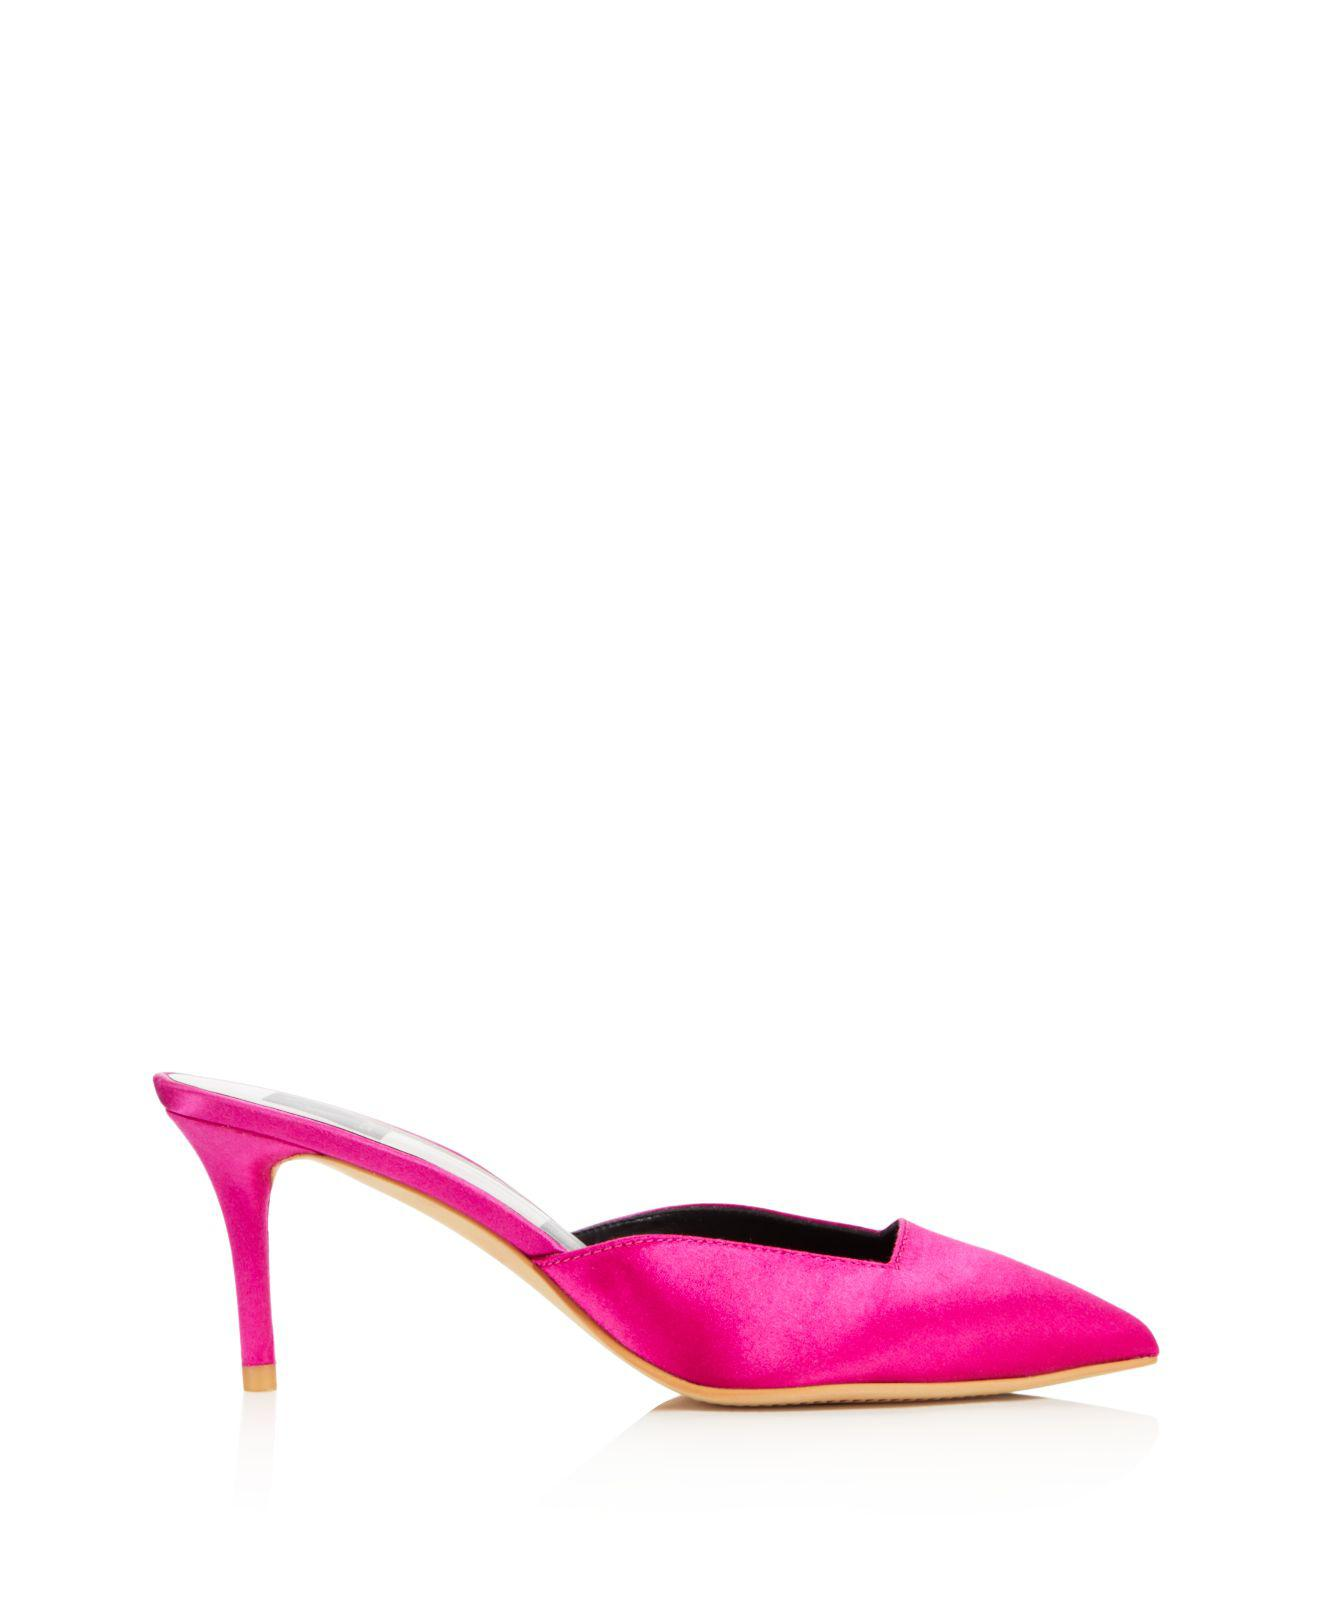 Dolce Vita Women's Rhyme Satin Mule Pumps - 100% Exclusive